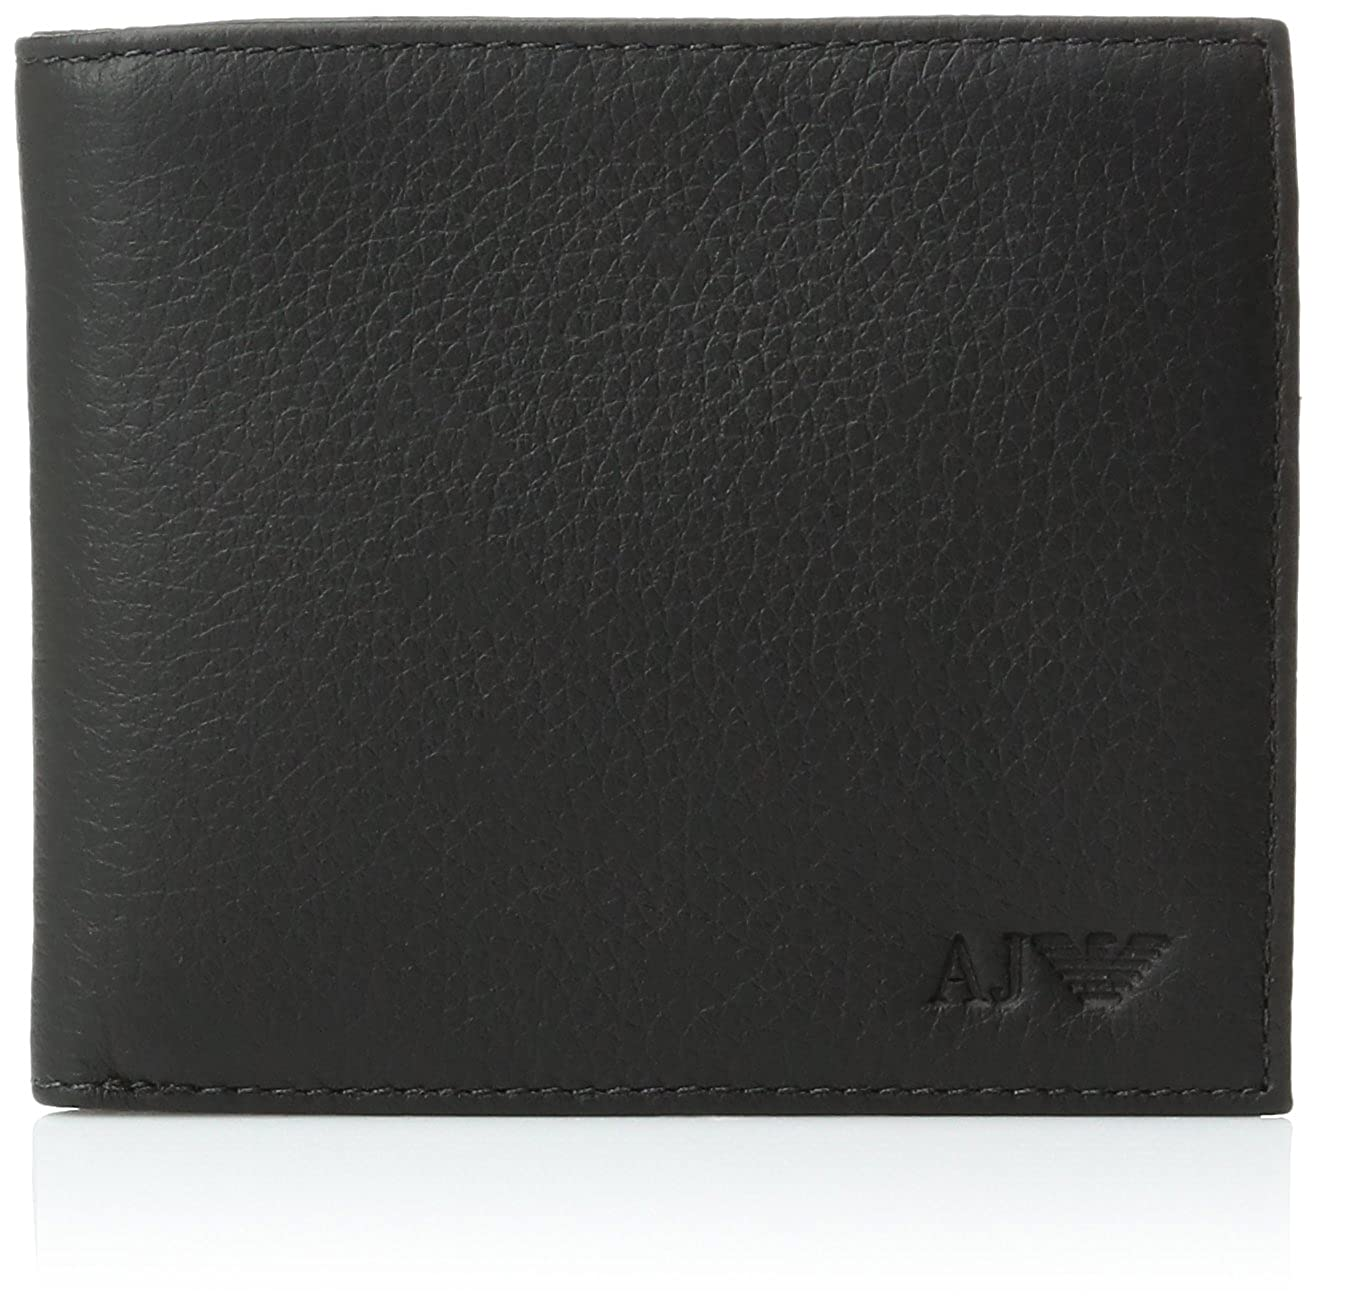 e4cfafca6b Armani Jeans Men's Genuine Leather Bifold Wallet 11x9x2